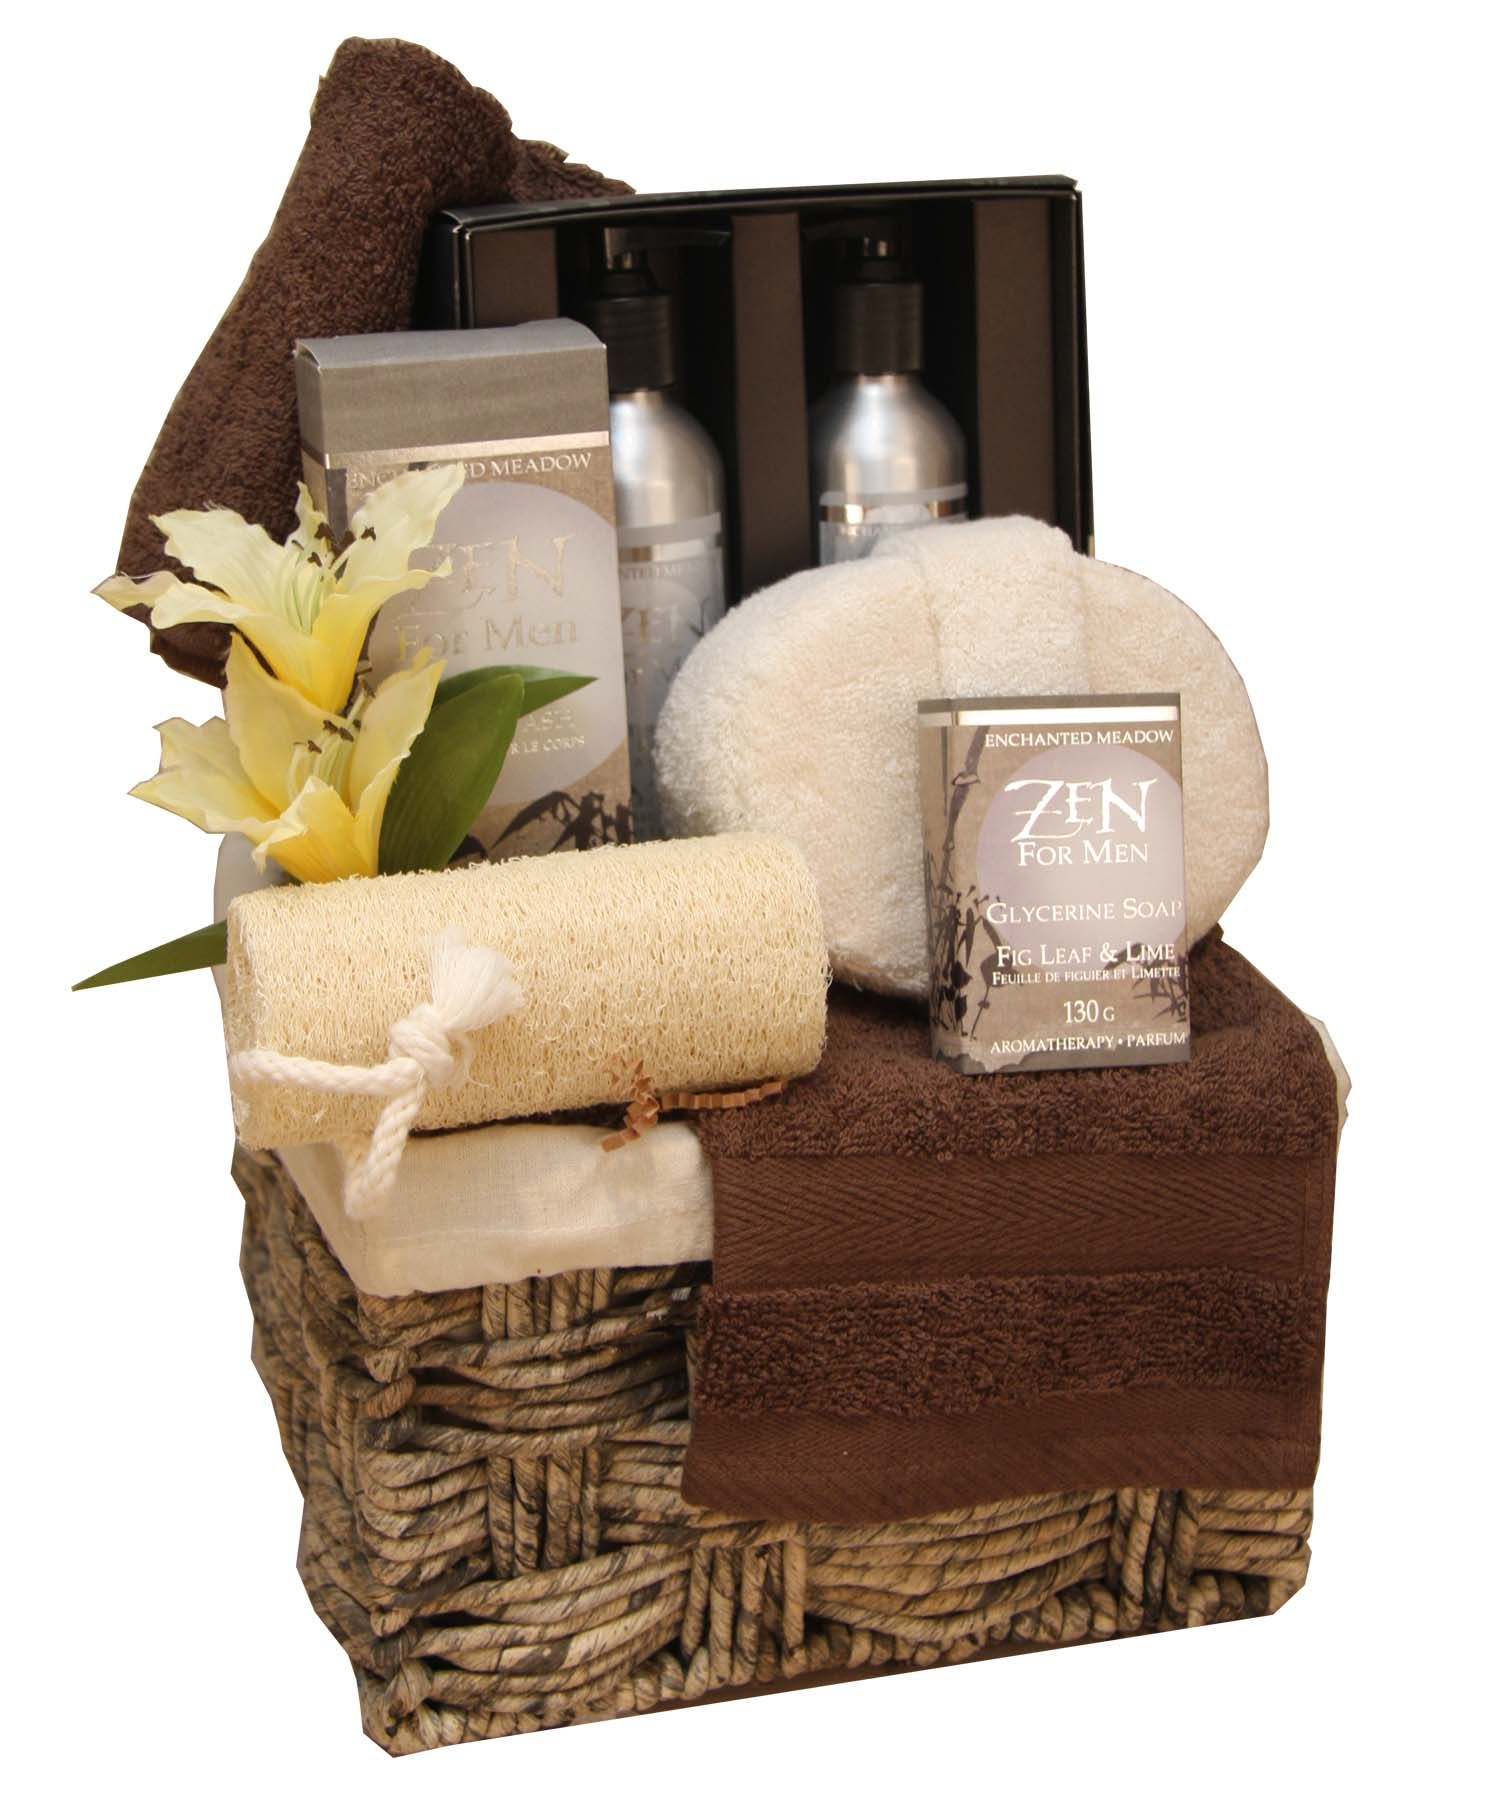 Manly spa gift basket manly gifts pinterest for Spa gifi